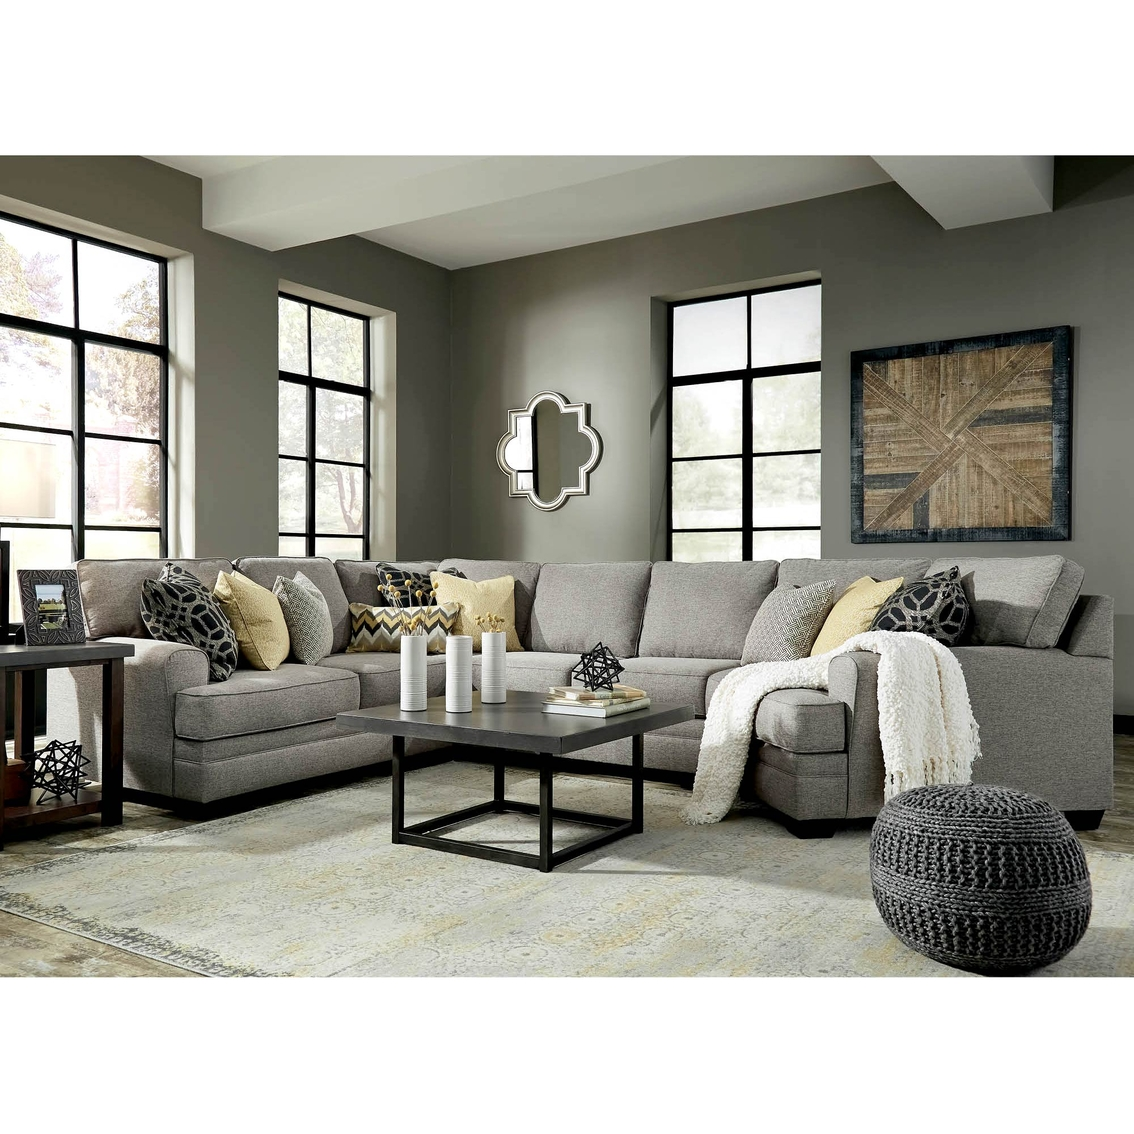 Couches 4 Benchcraft Cresson 4 Pc Sectional Raf Cuddler Laf Loveseat